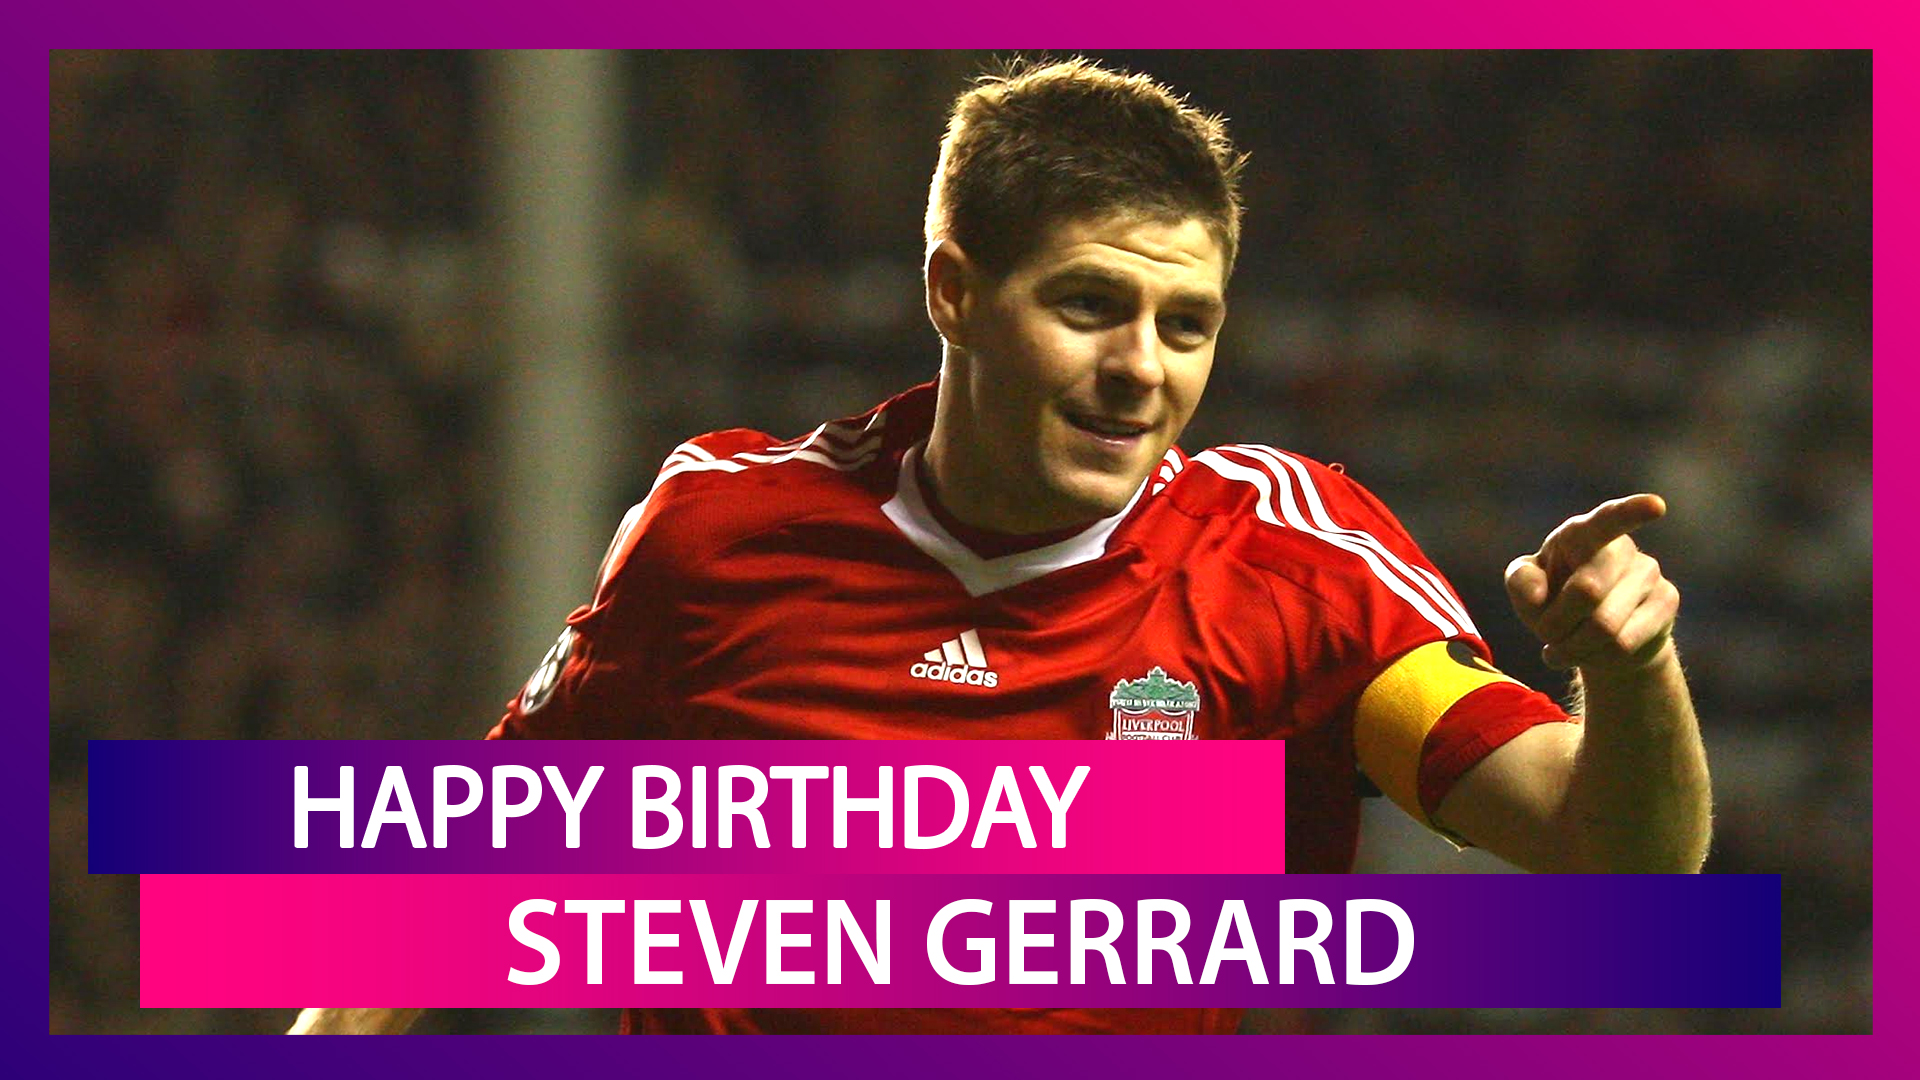 Happy Birthday Steven Gerrard: Lesser Known Facts About The Liverpool Legend